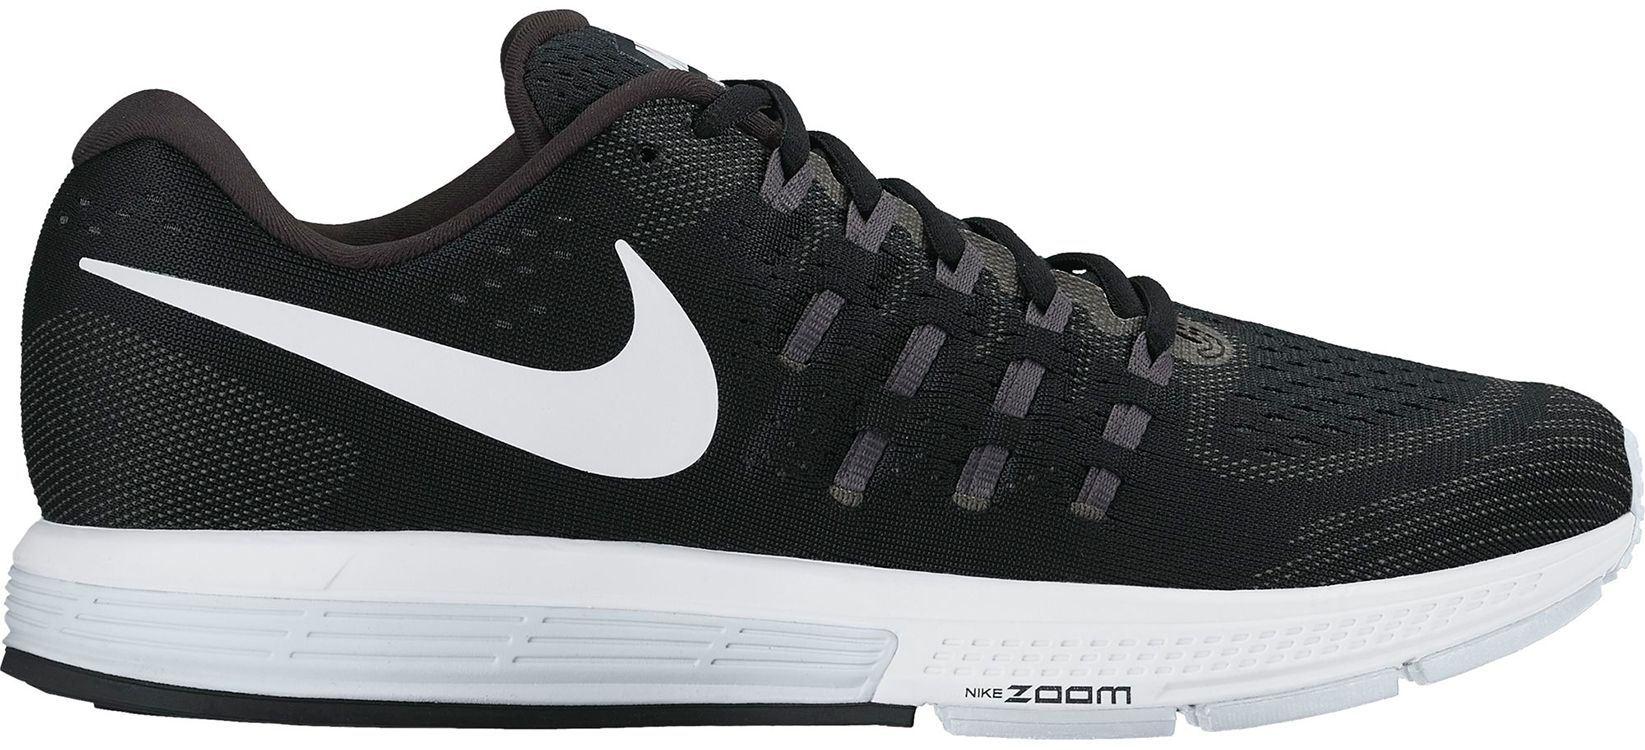 Nike Zoom Boys Tennis Shoes Com Au